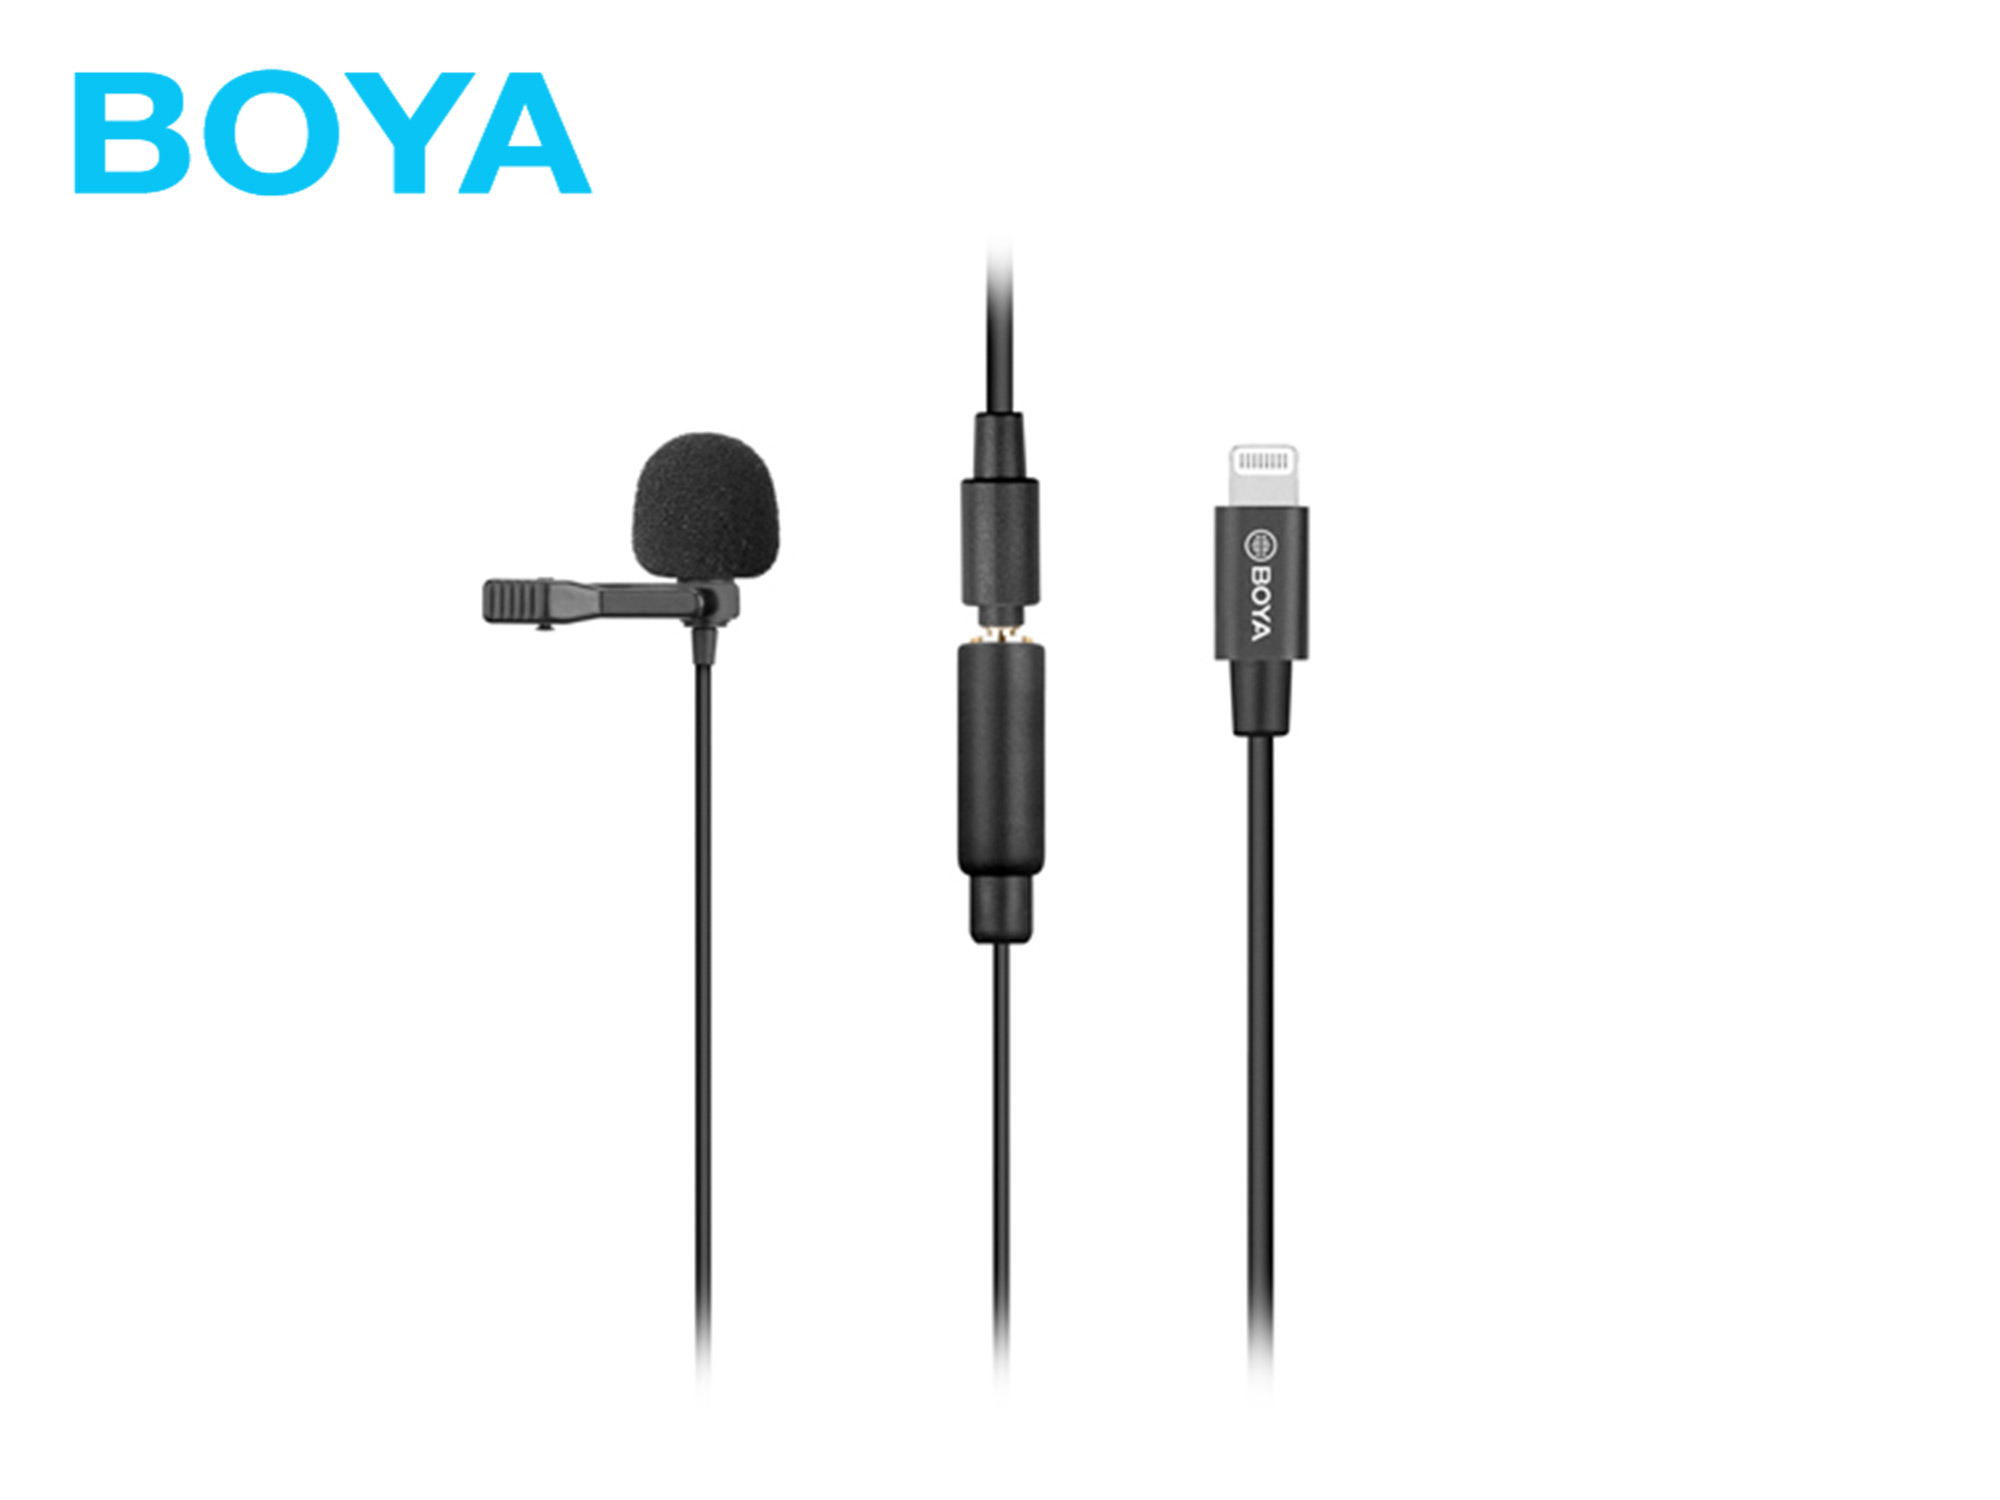 BOYA BY-M2 Clip-on Lavalier Microphone (For iOS system)